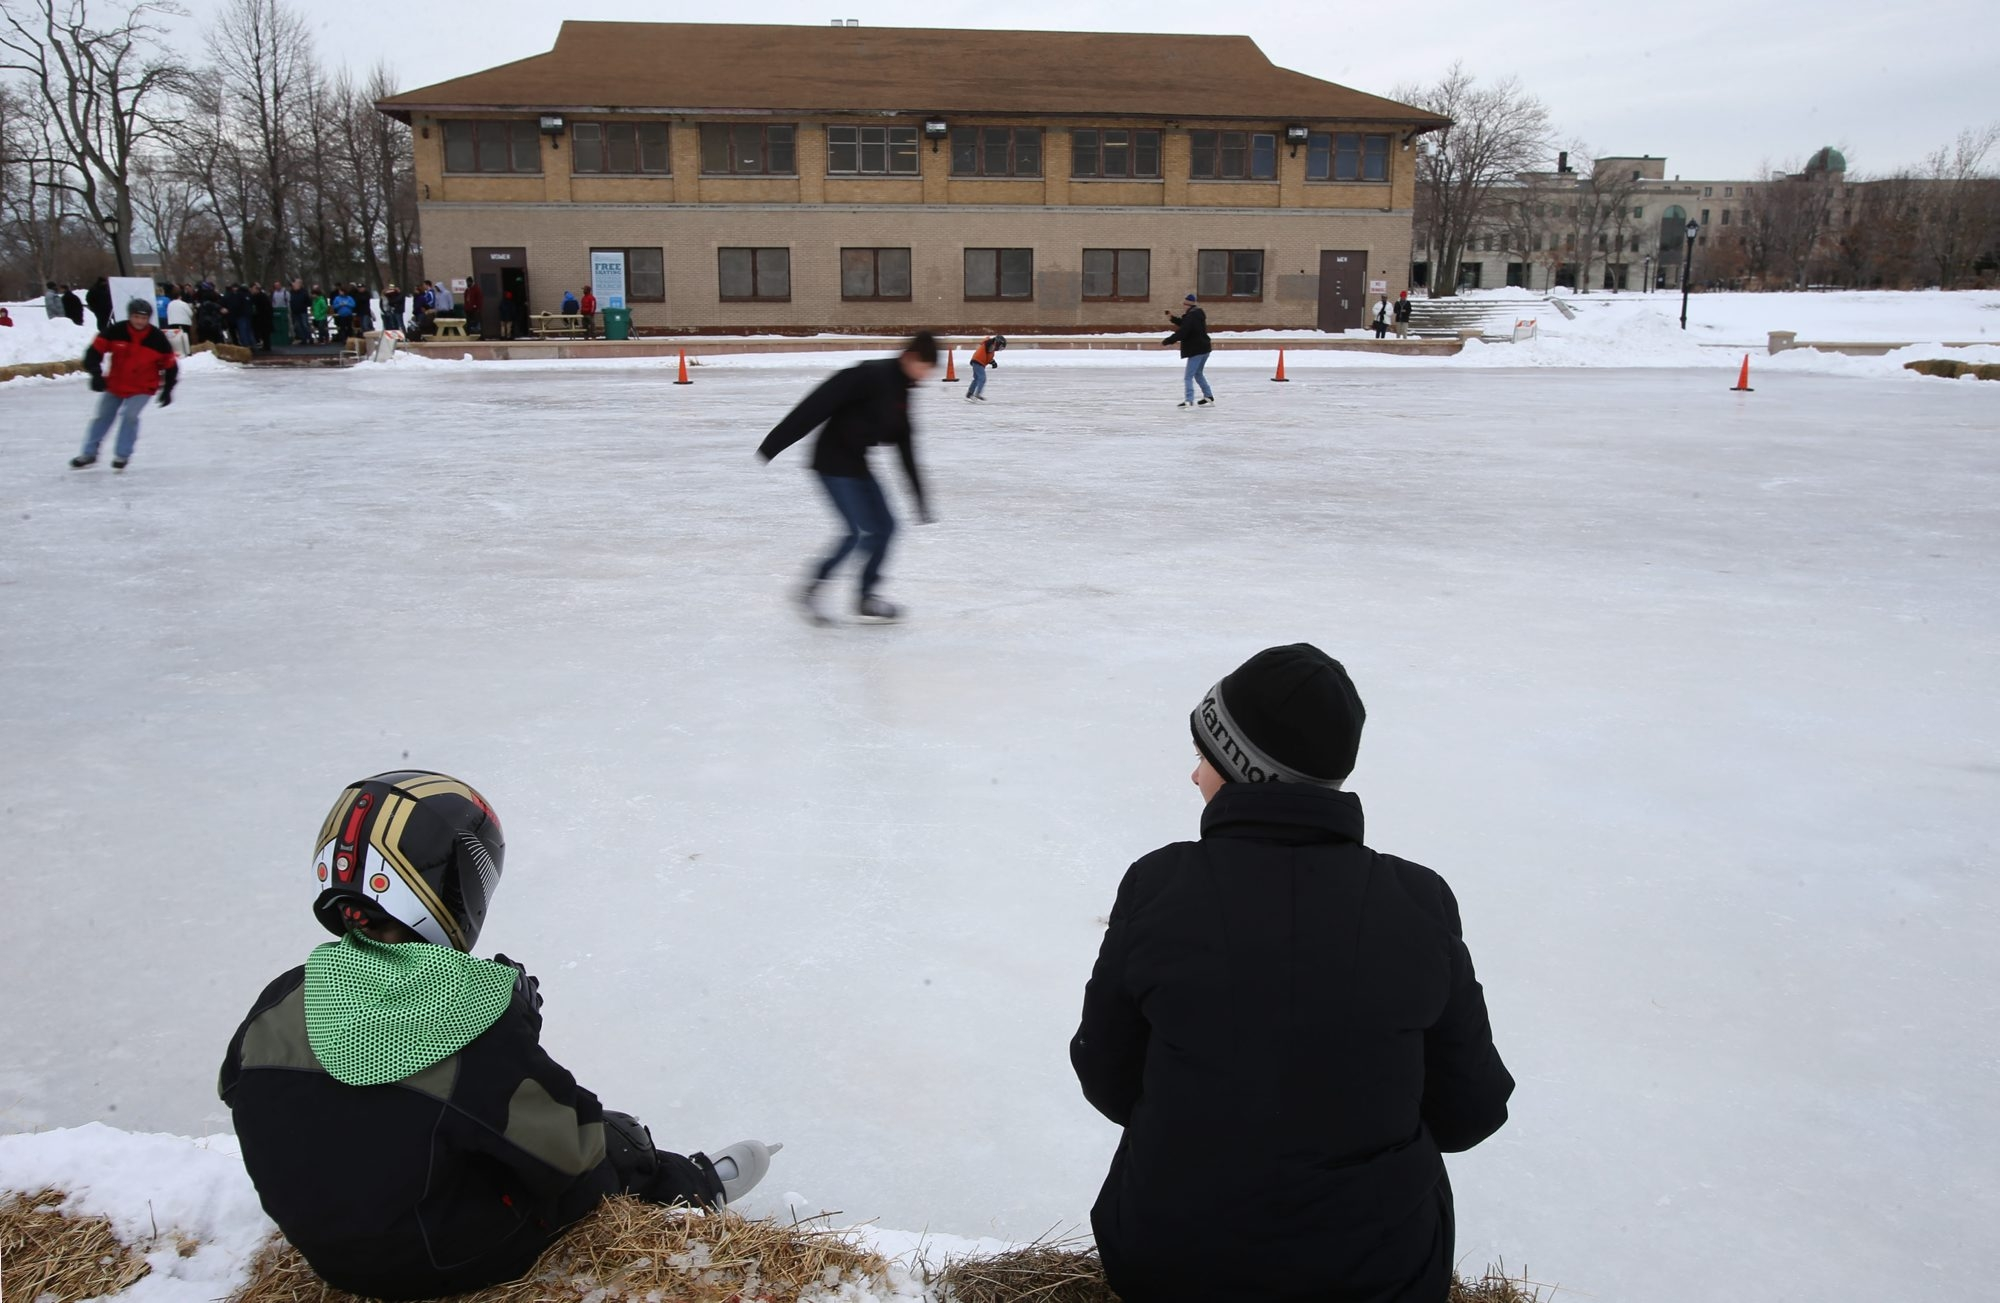 Kristin Merlo, of Buffalo, and her son Patrick, 9,  watch the skaters on the ice rink at Martin Luther King Park in Buffalo on Sunday.